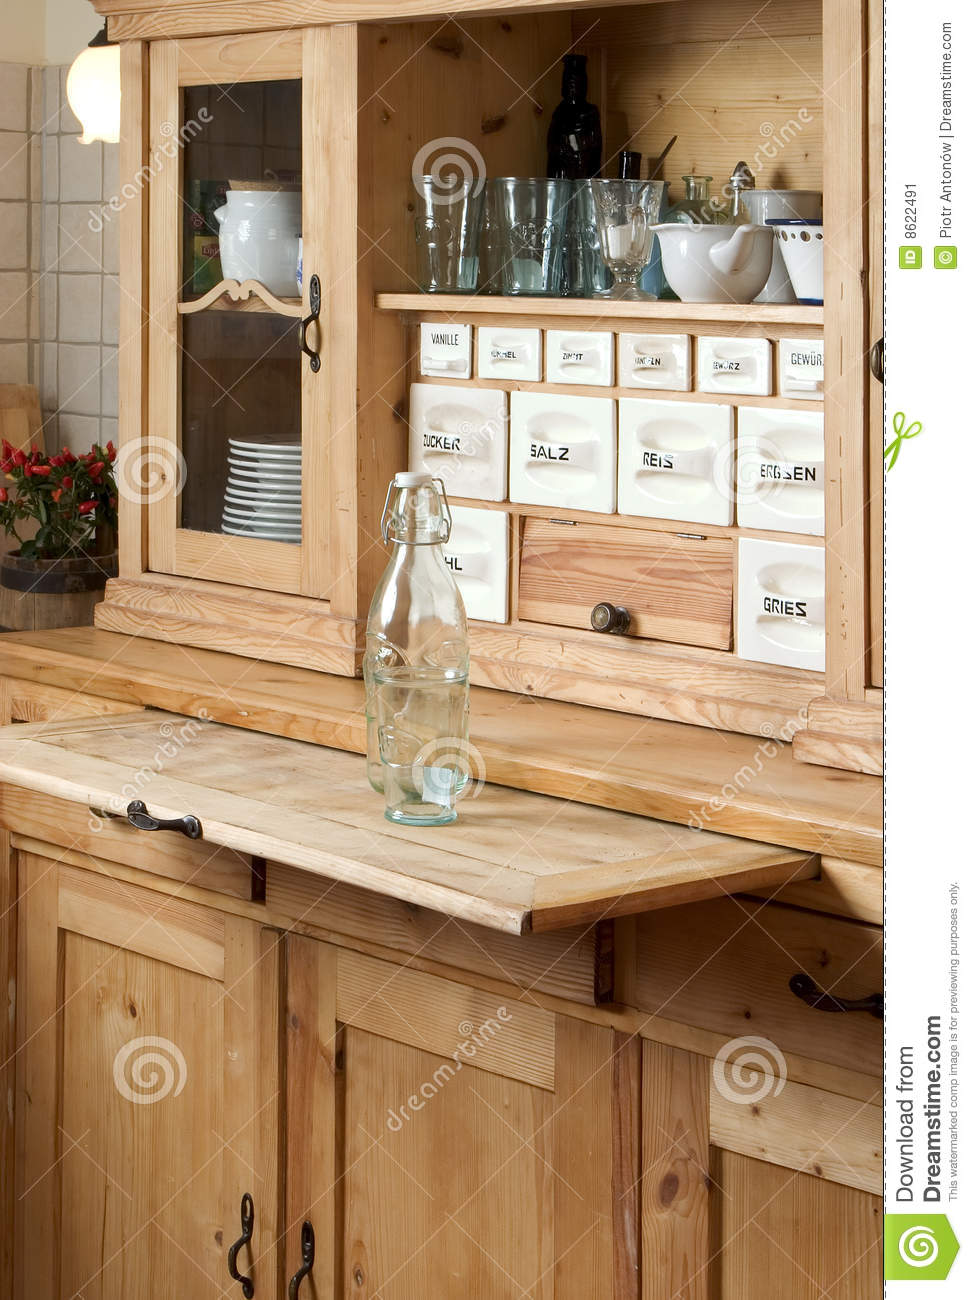 https://thumbs.dreamstime.com/z/sideboard-der-k%C3%BCche-8622491.jpg